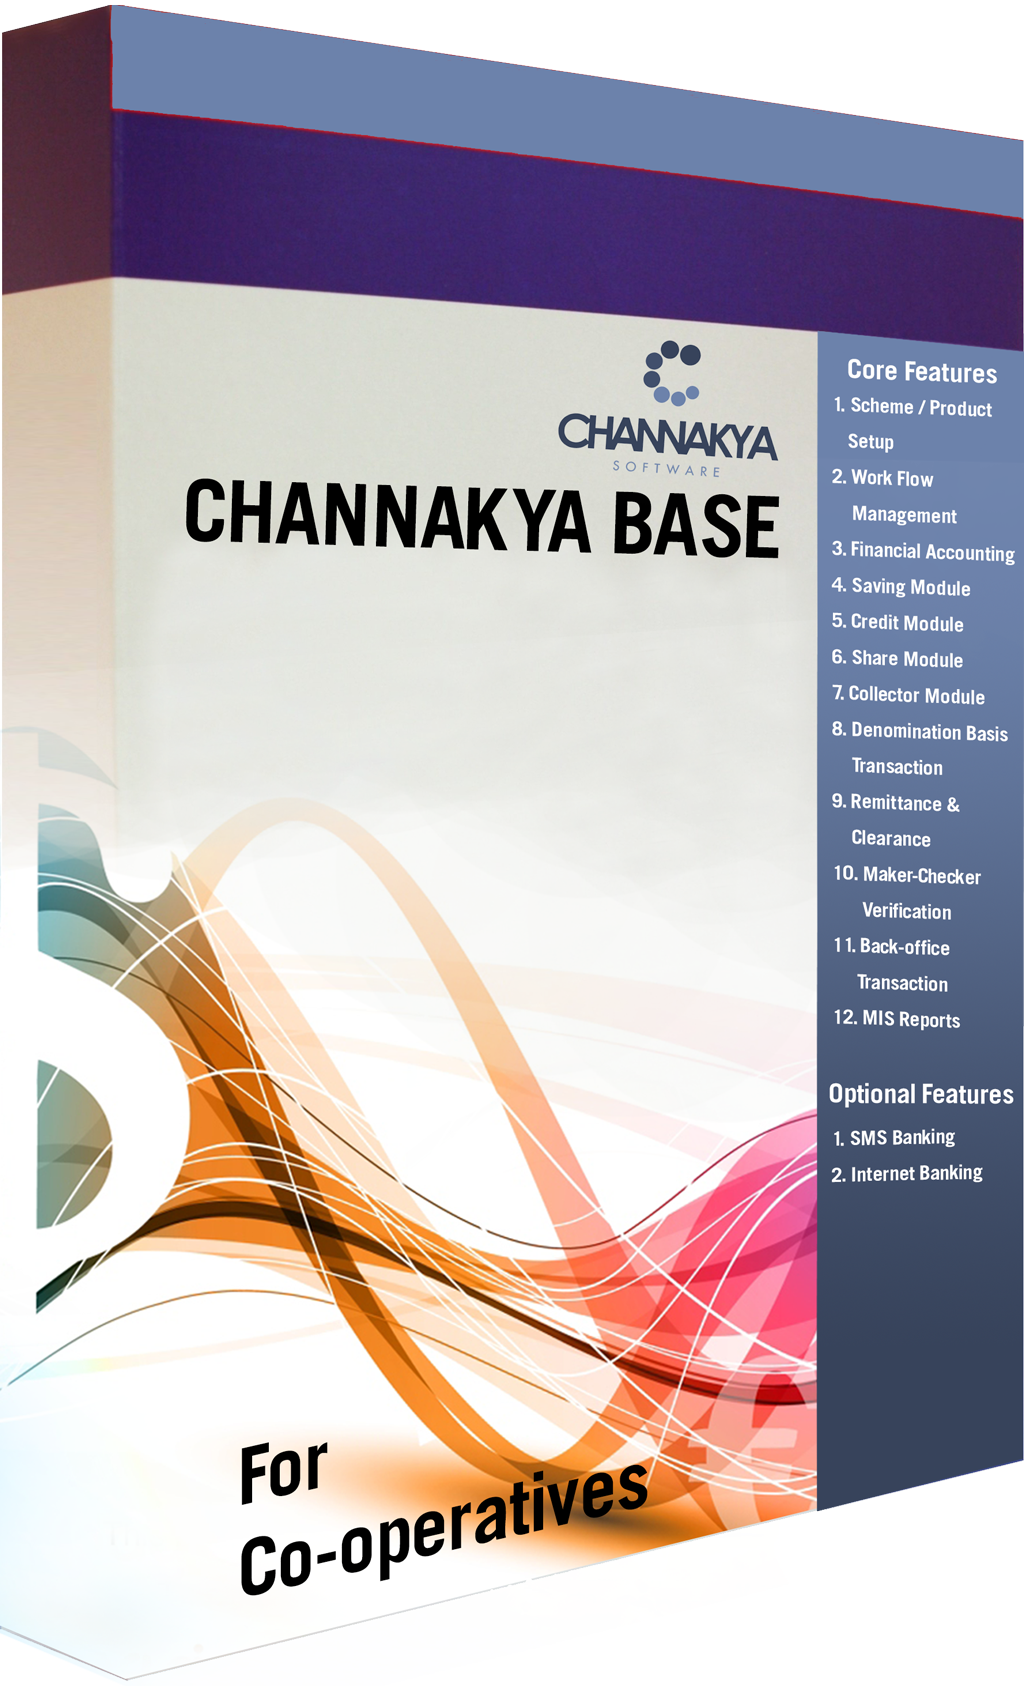 Channakya Software Base A Cooperative Pin Pa System Setup Diagram On Pinterest It